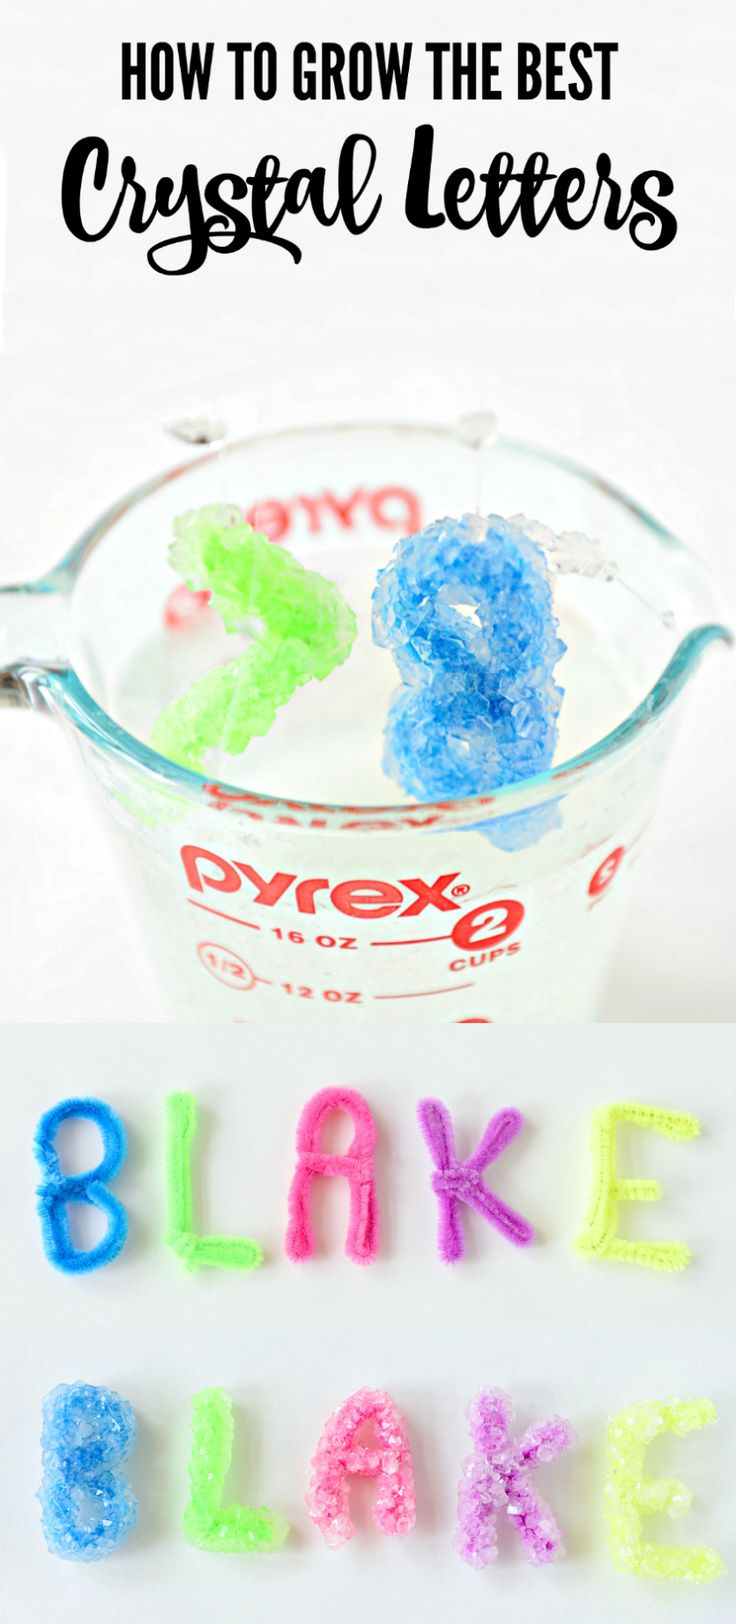 These crystals are AWESOME!  Step by step instructions to make the cutest crystal letters. Perfect for weekend fun with the kids!    Borax crystal letters - how to grow borax crystal letters - how to make the best crystal letters - how to grow crystal let